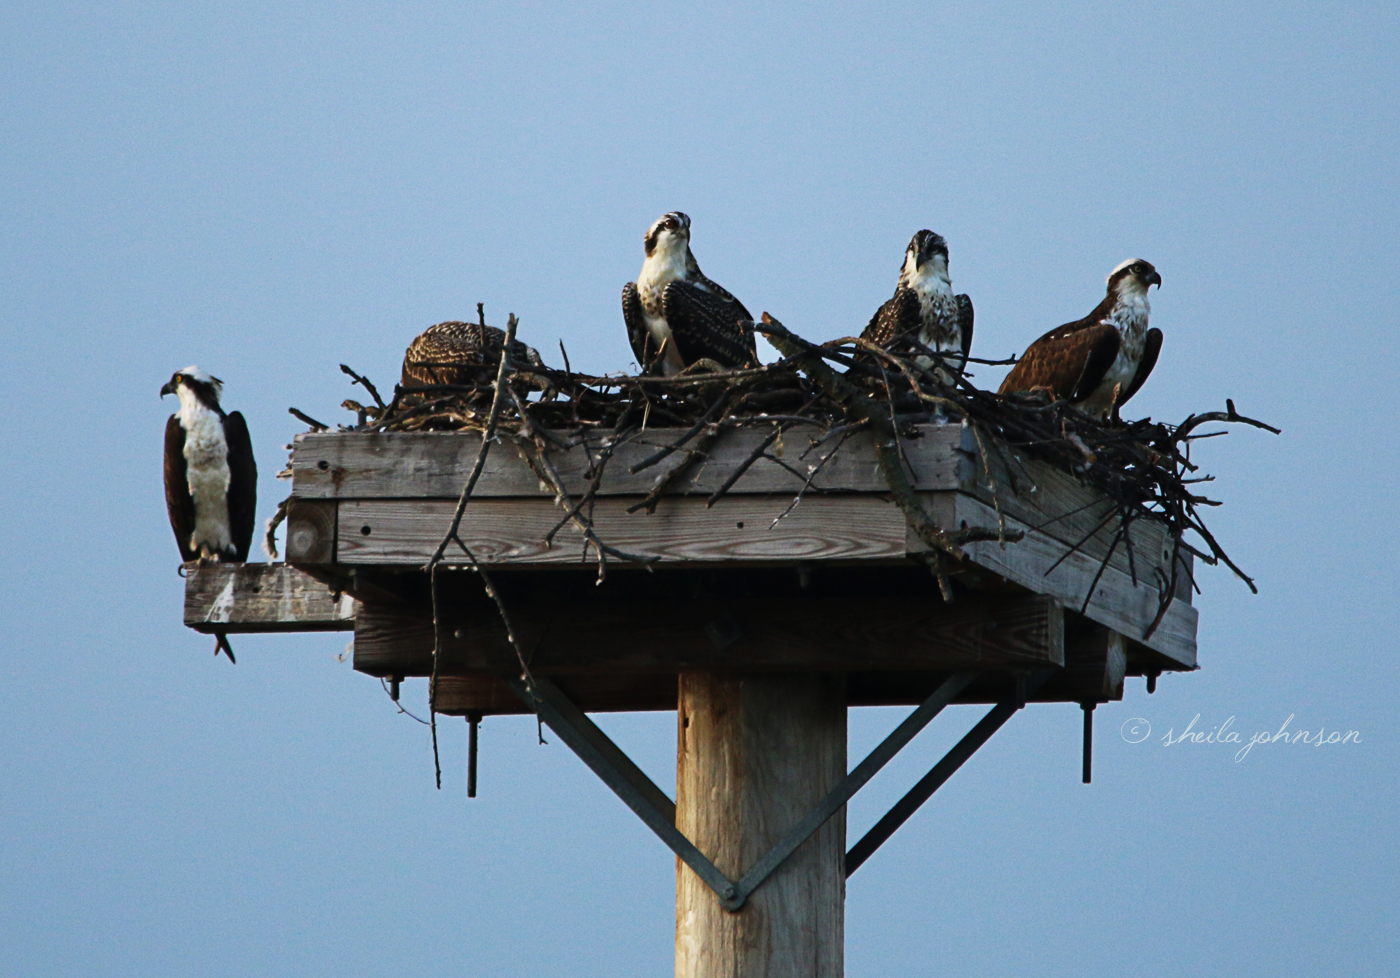 And On This Day, The Entire Family Greets Us At The 'life In The Big Nest' Osprey Nest. I Have A Hard Time Picking Mom Out From The Juveniles, (Unless She's Yelling At Me), But I Think She's The One In The Middle, With Fewer Speckles On Her Chest.